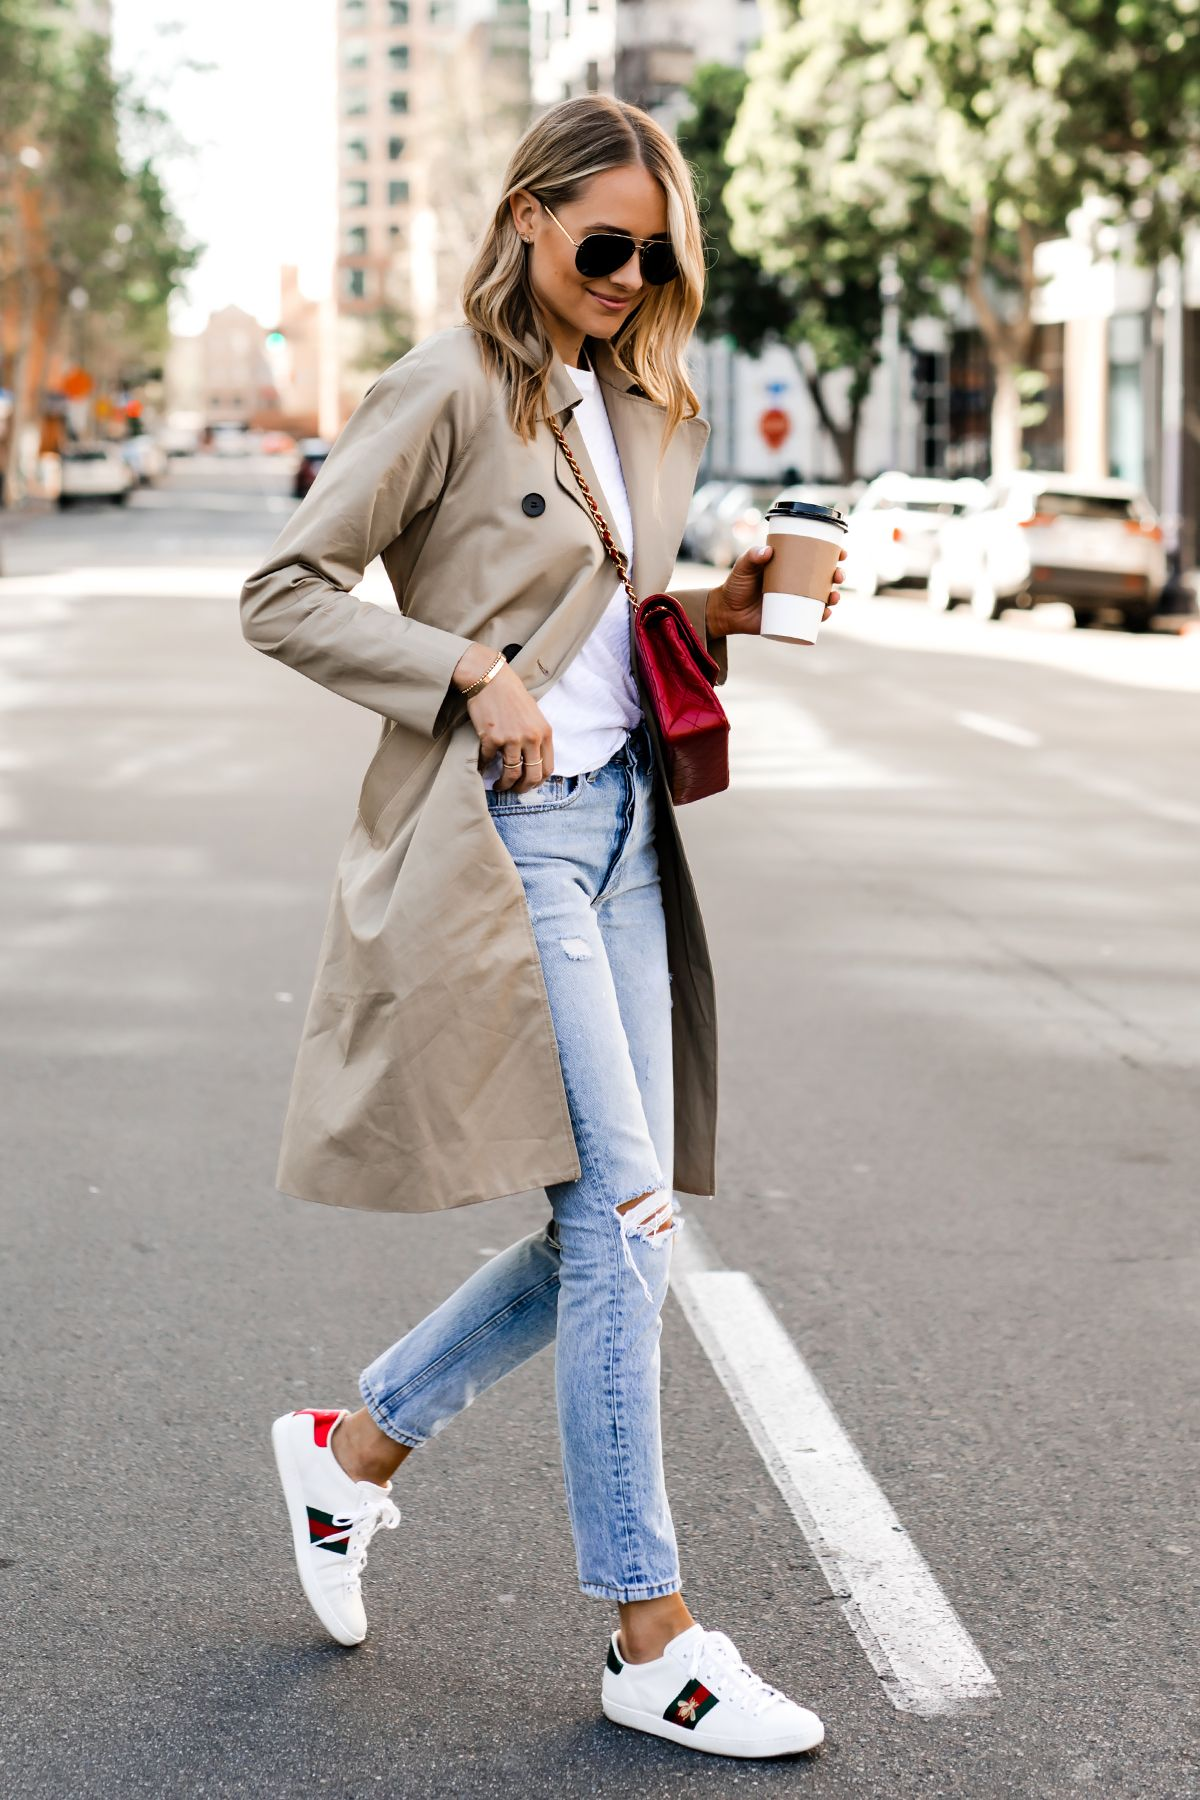 9a2935efc01db1 Fashion Jackson Wearing Everlane Trench Coat White Tshirt Ripped Jeans  Gucci Ace Embroidered Sneakers